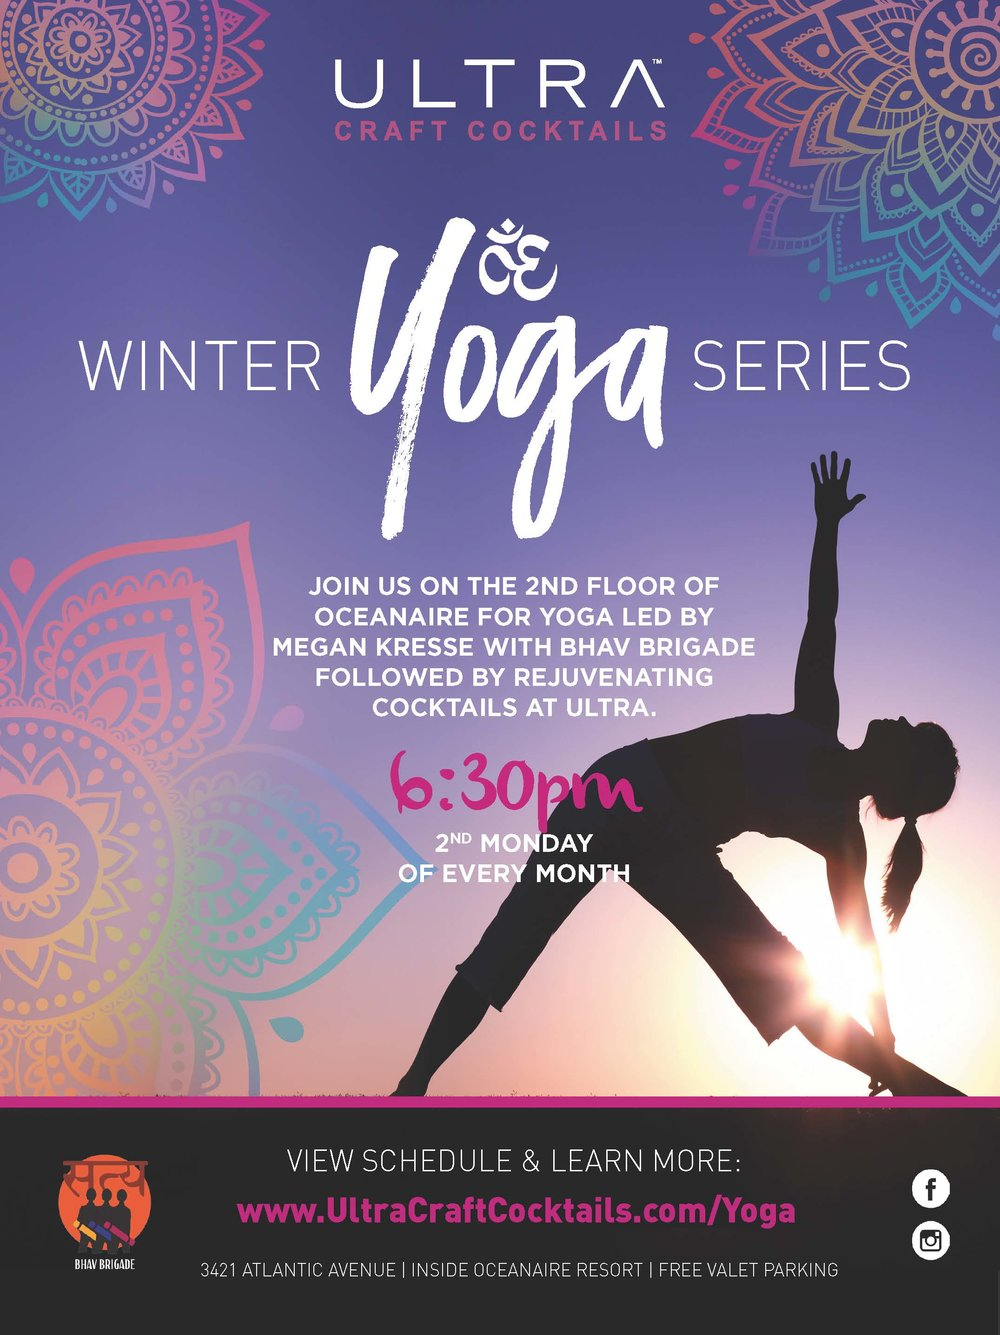 UL_2578 Winter Yoga Series 8.5x11 Generic.jpg